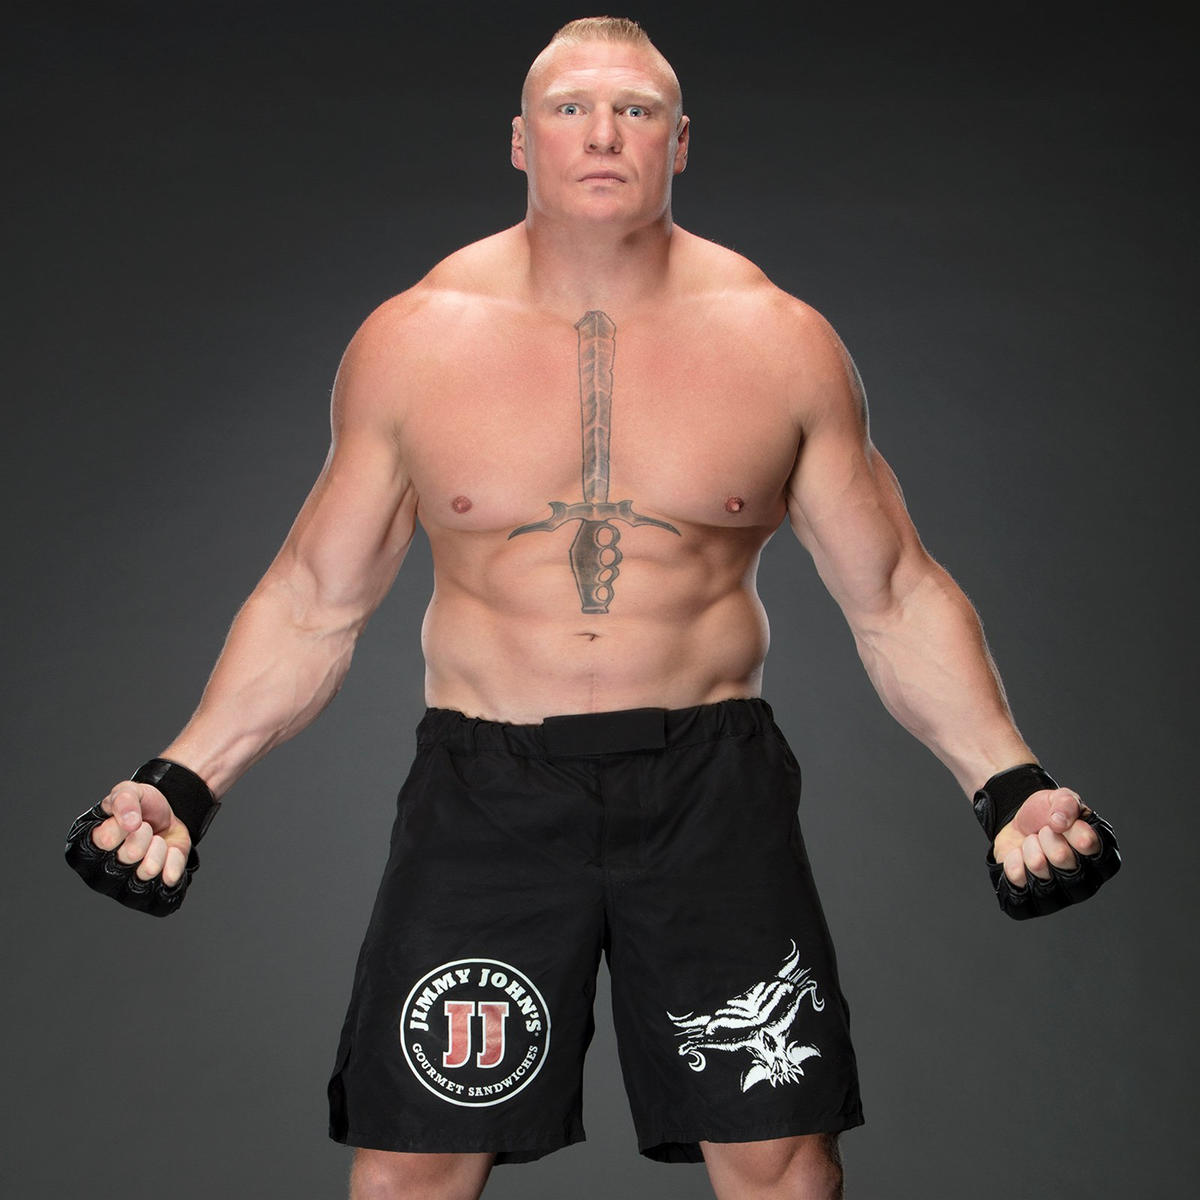 Brock Lesnar may be the only Superstar capable of throwing Big Show around like he's a lightweight.